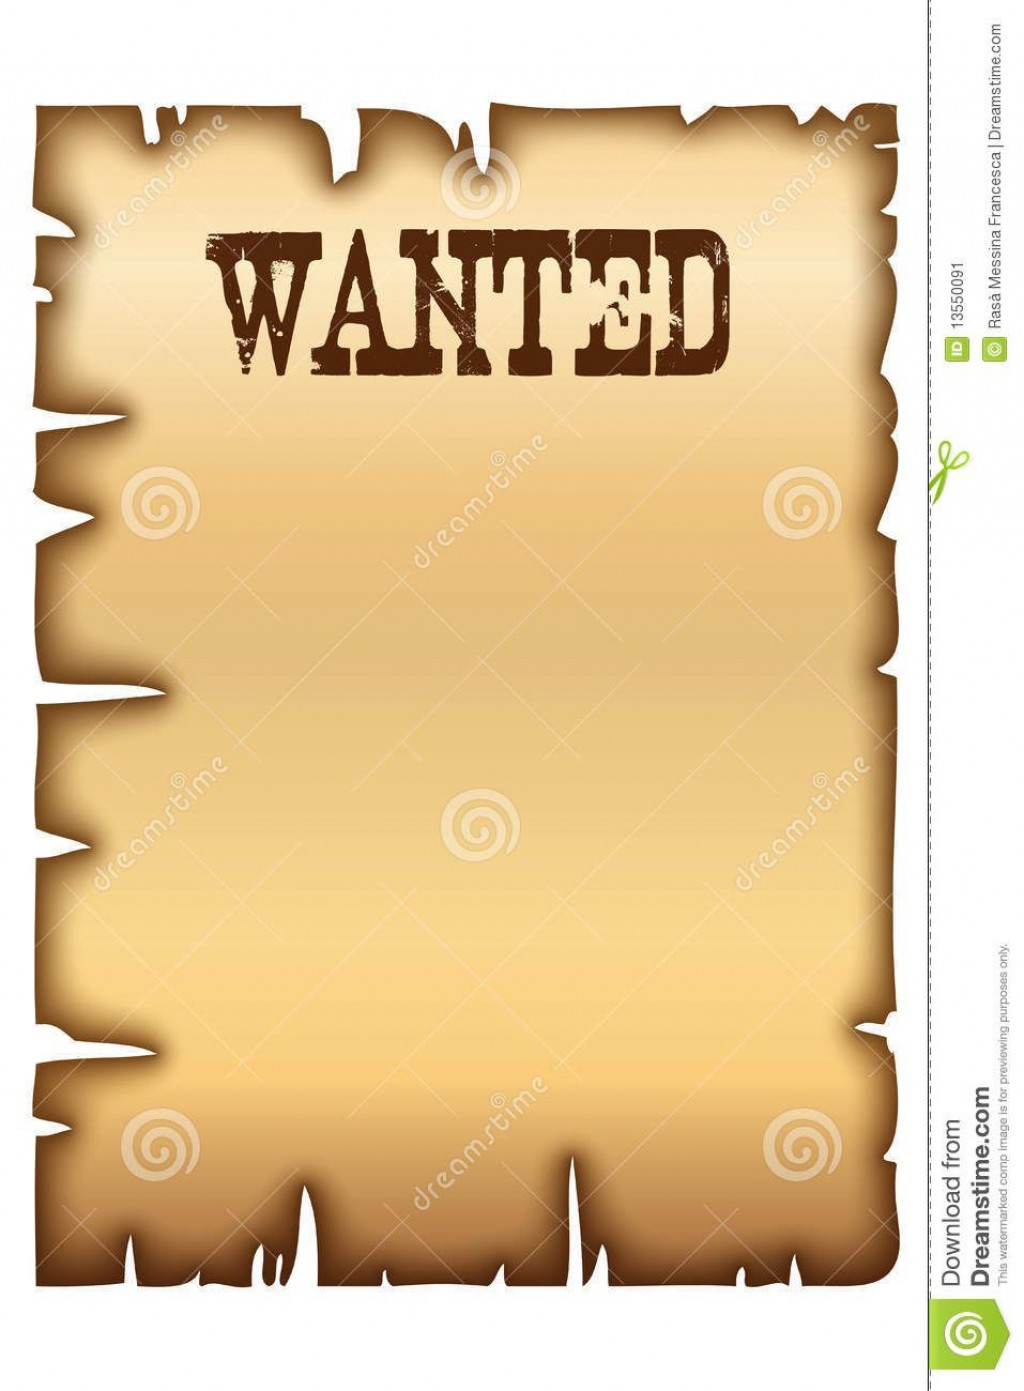 004 Wonderful Wanted Poster Template Microsoft Word High Definition  Western MostLarge